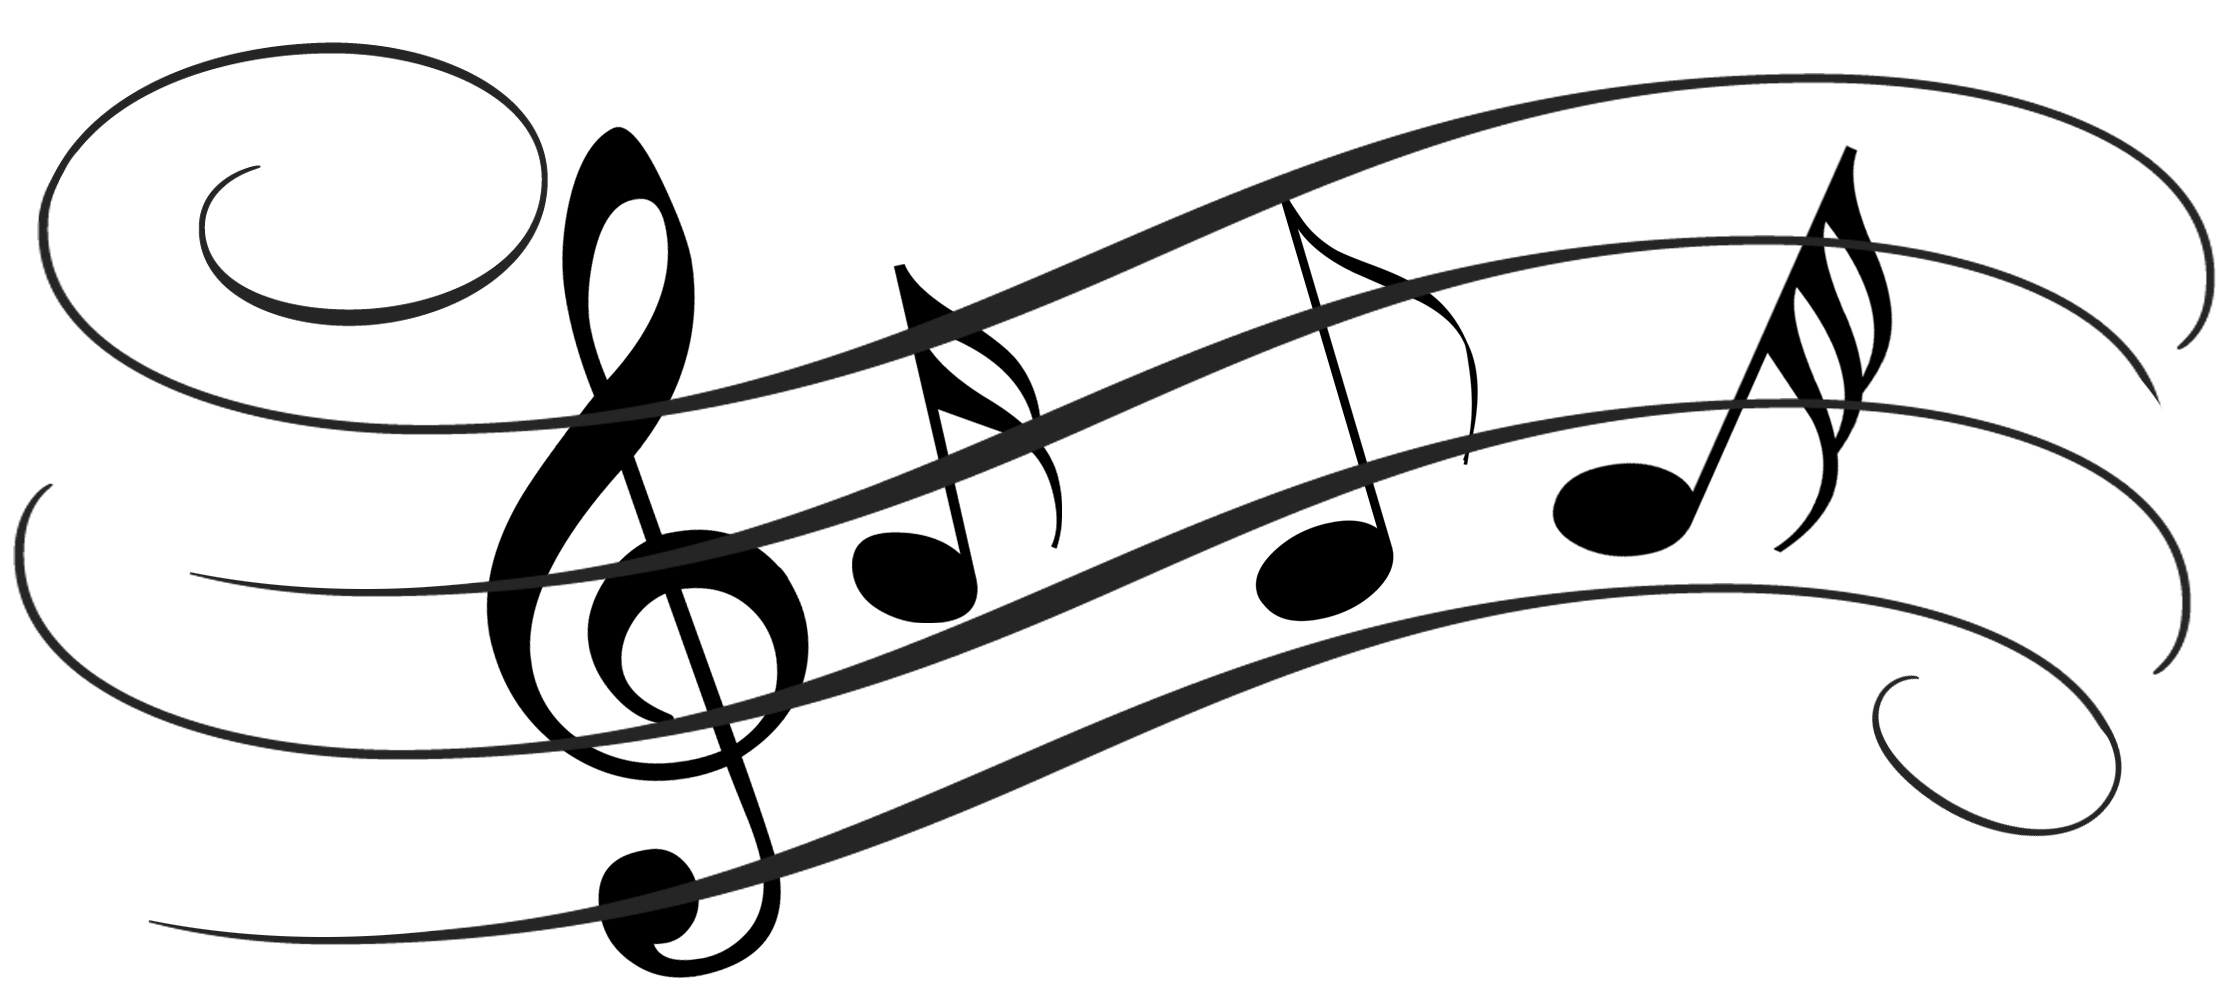 Music Notes clipart #8, Download drawings